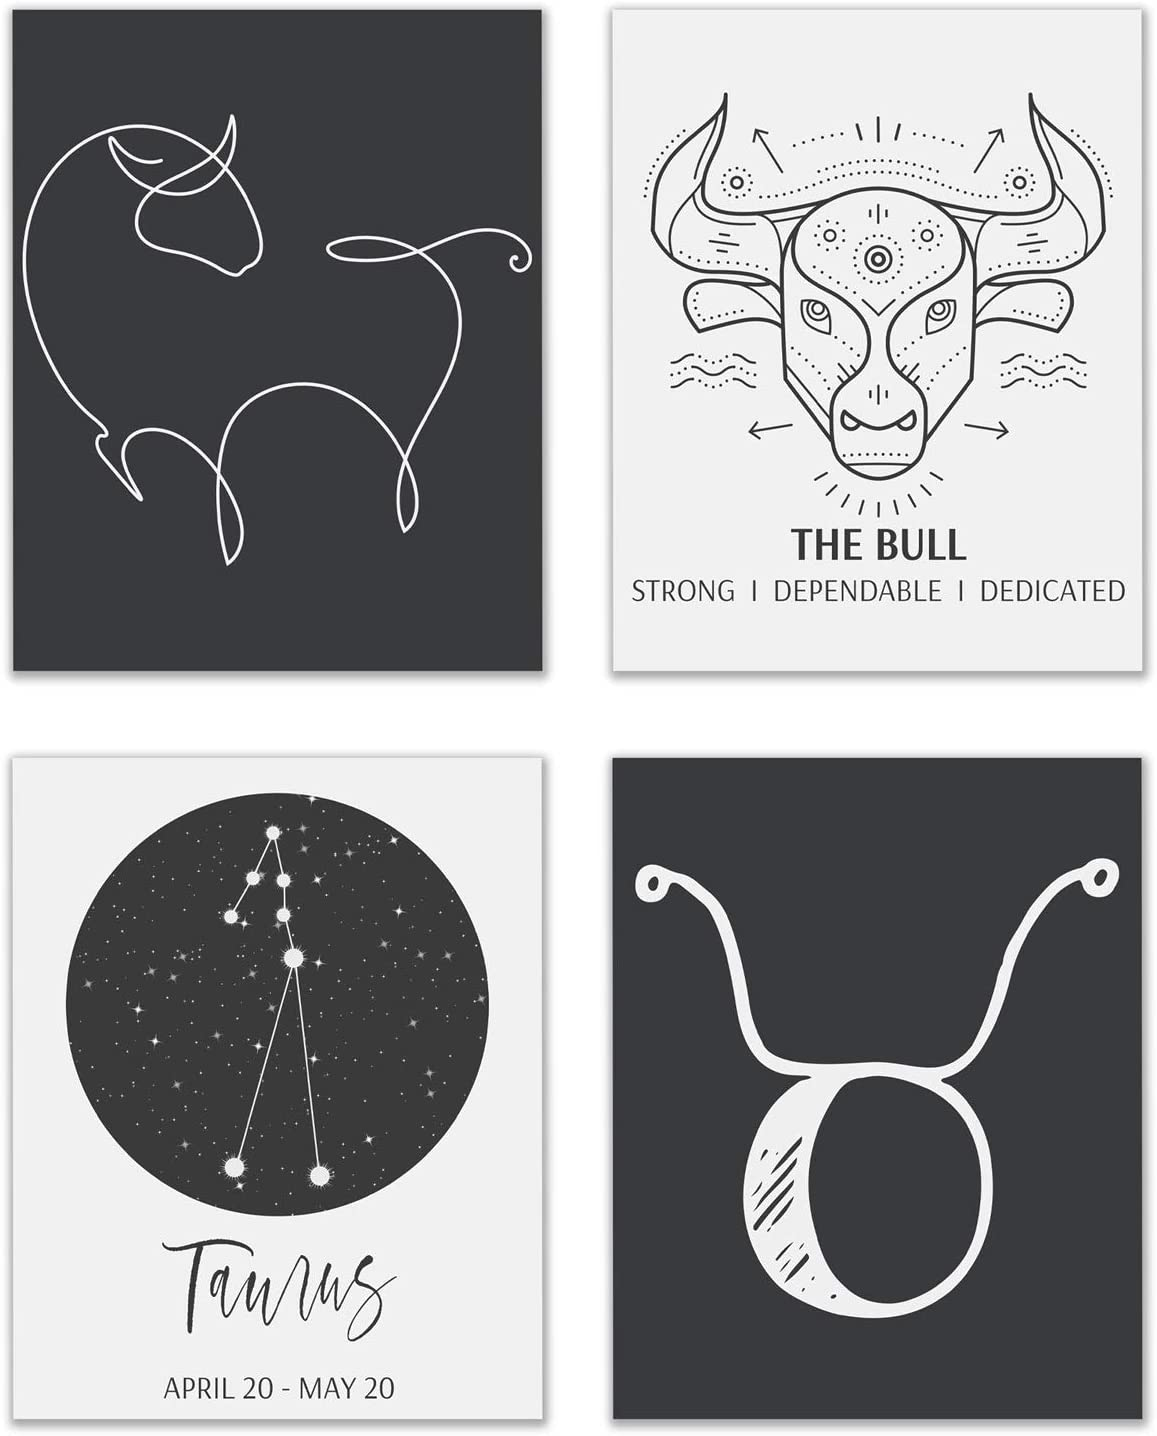 Taurus Astrological Sign Prints - Set of 4 (8x10 Inches) Zodiac Constellation Horoscope Star Sign Four Elements Wall Art Decor - The Bull - Earth - Fixed - Venus